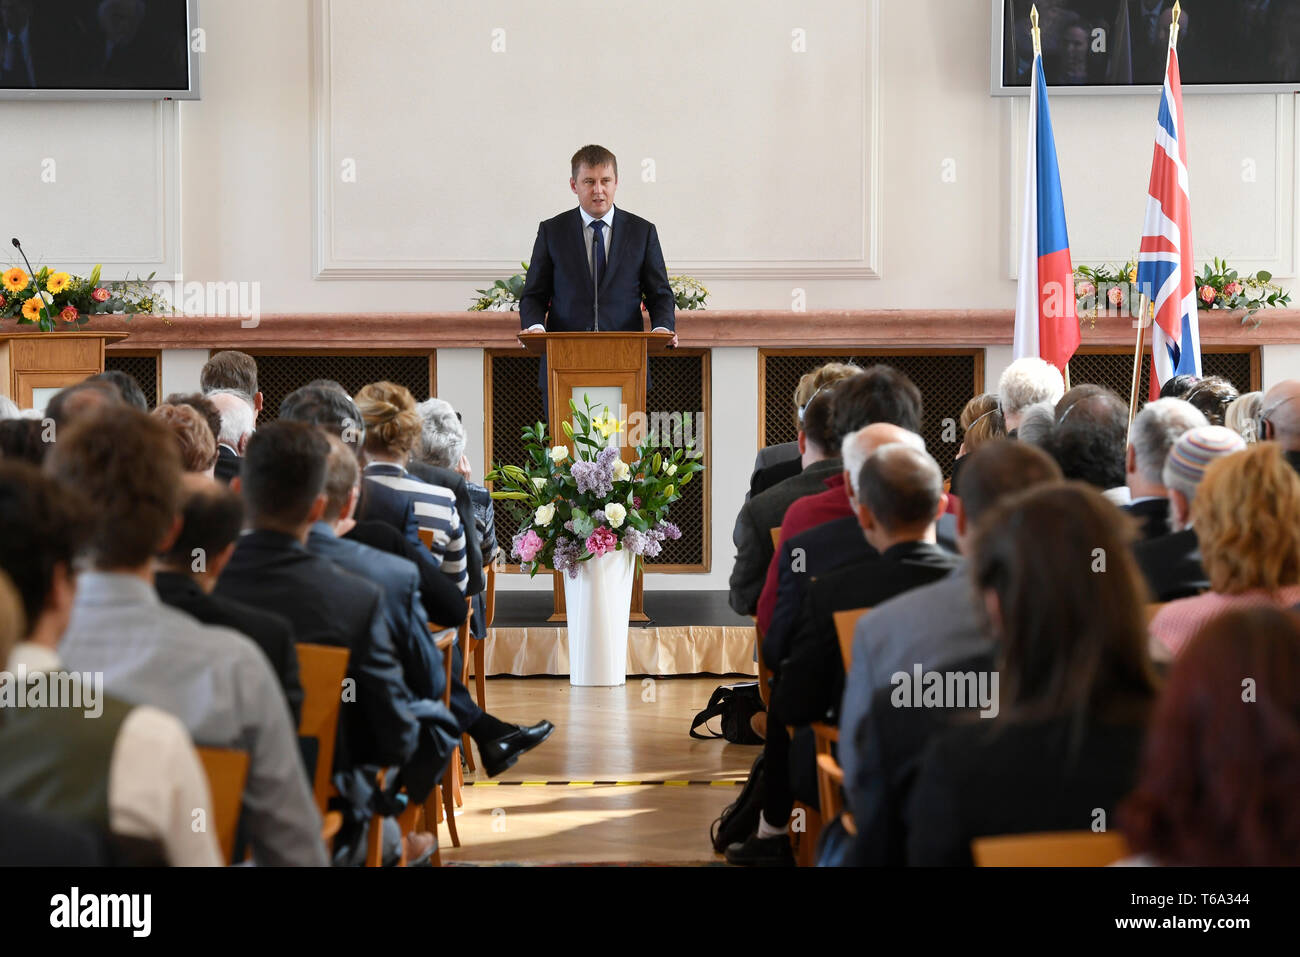 Prague, Czech Republic. 30th Apr, 2019. Czech Foreign Minister Tomas Petricek remembers organisers of children's rescue transport from Czech lands controlled by Nazi Germany to Britain in 1939 and thank families that accepted Czech children, on April 30, 2019, in Prague, Czech Republic. Credit: Michal Krumphanzl/CTK Photo/Alamy Live News - Stock Image